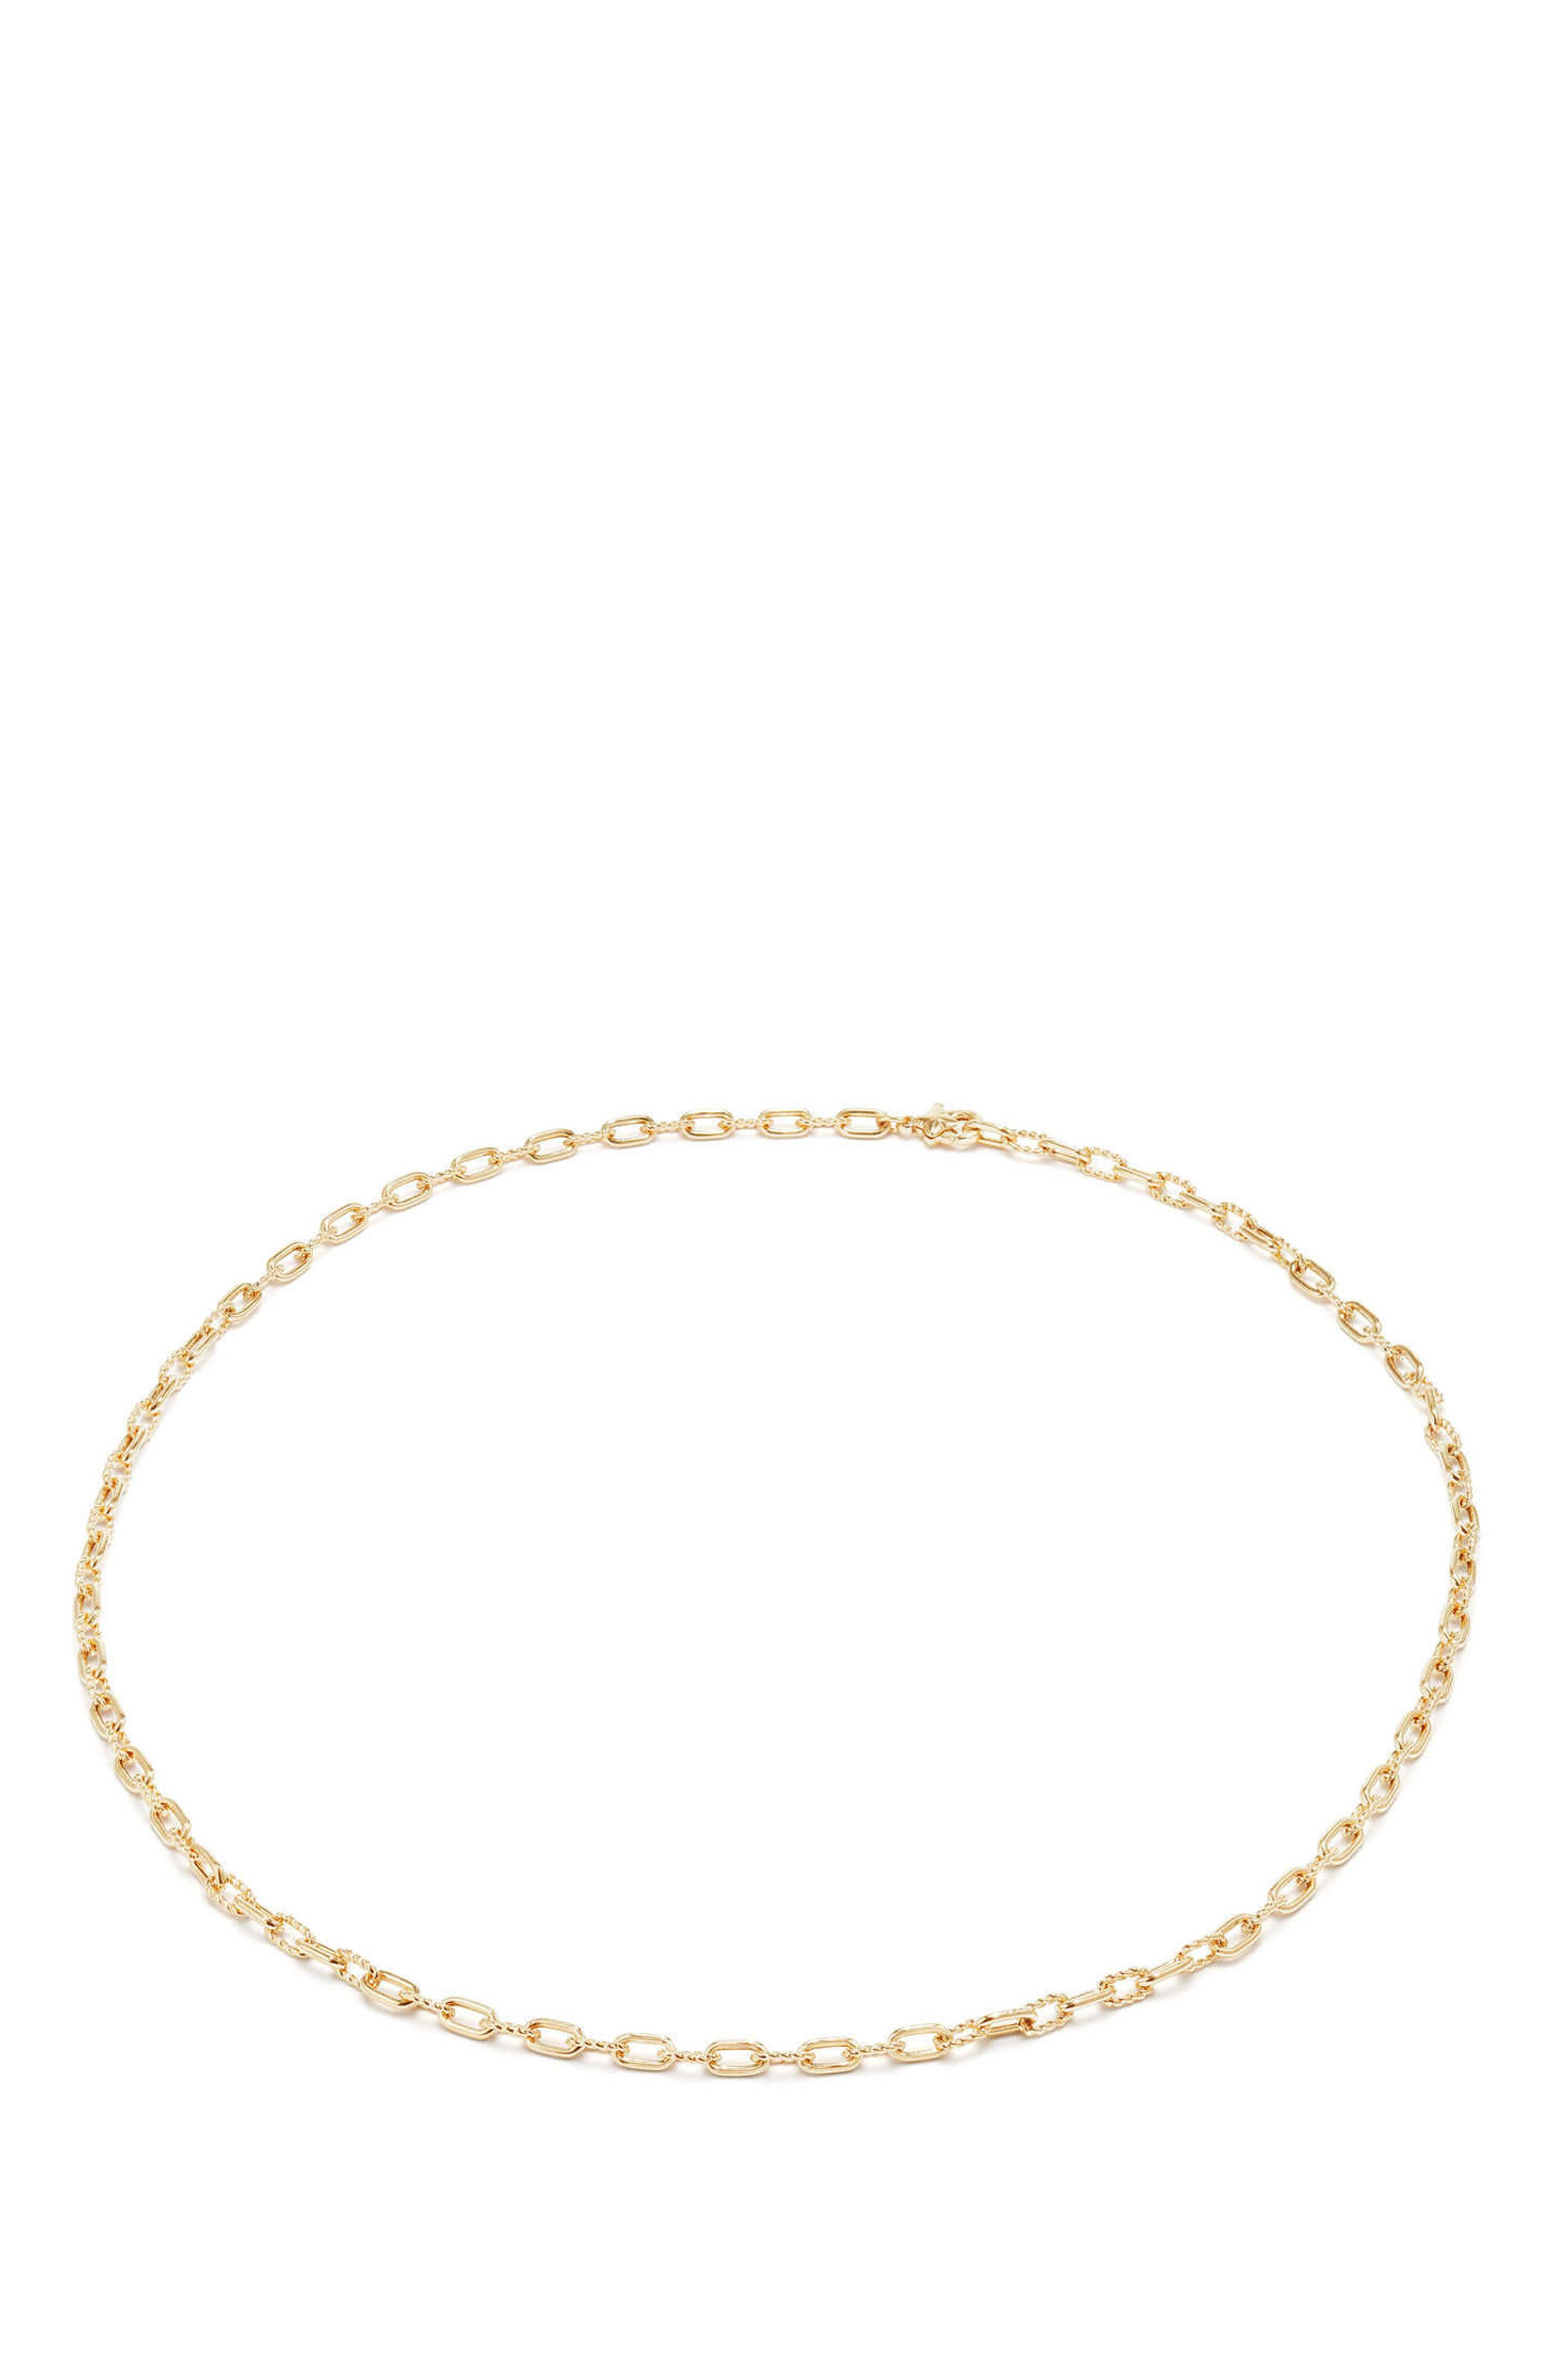 DY Madison Thin Chain Necklace in 18K Gold,                             Alternate thumbnail 2, color,                             Gold